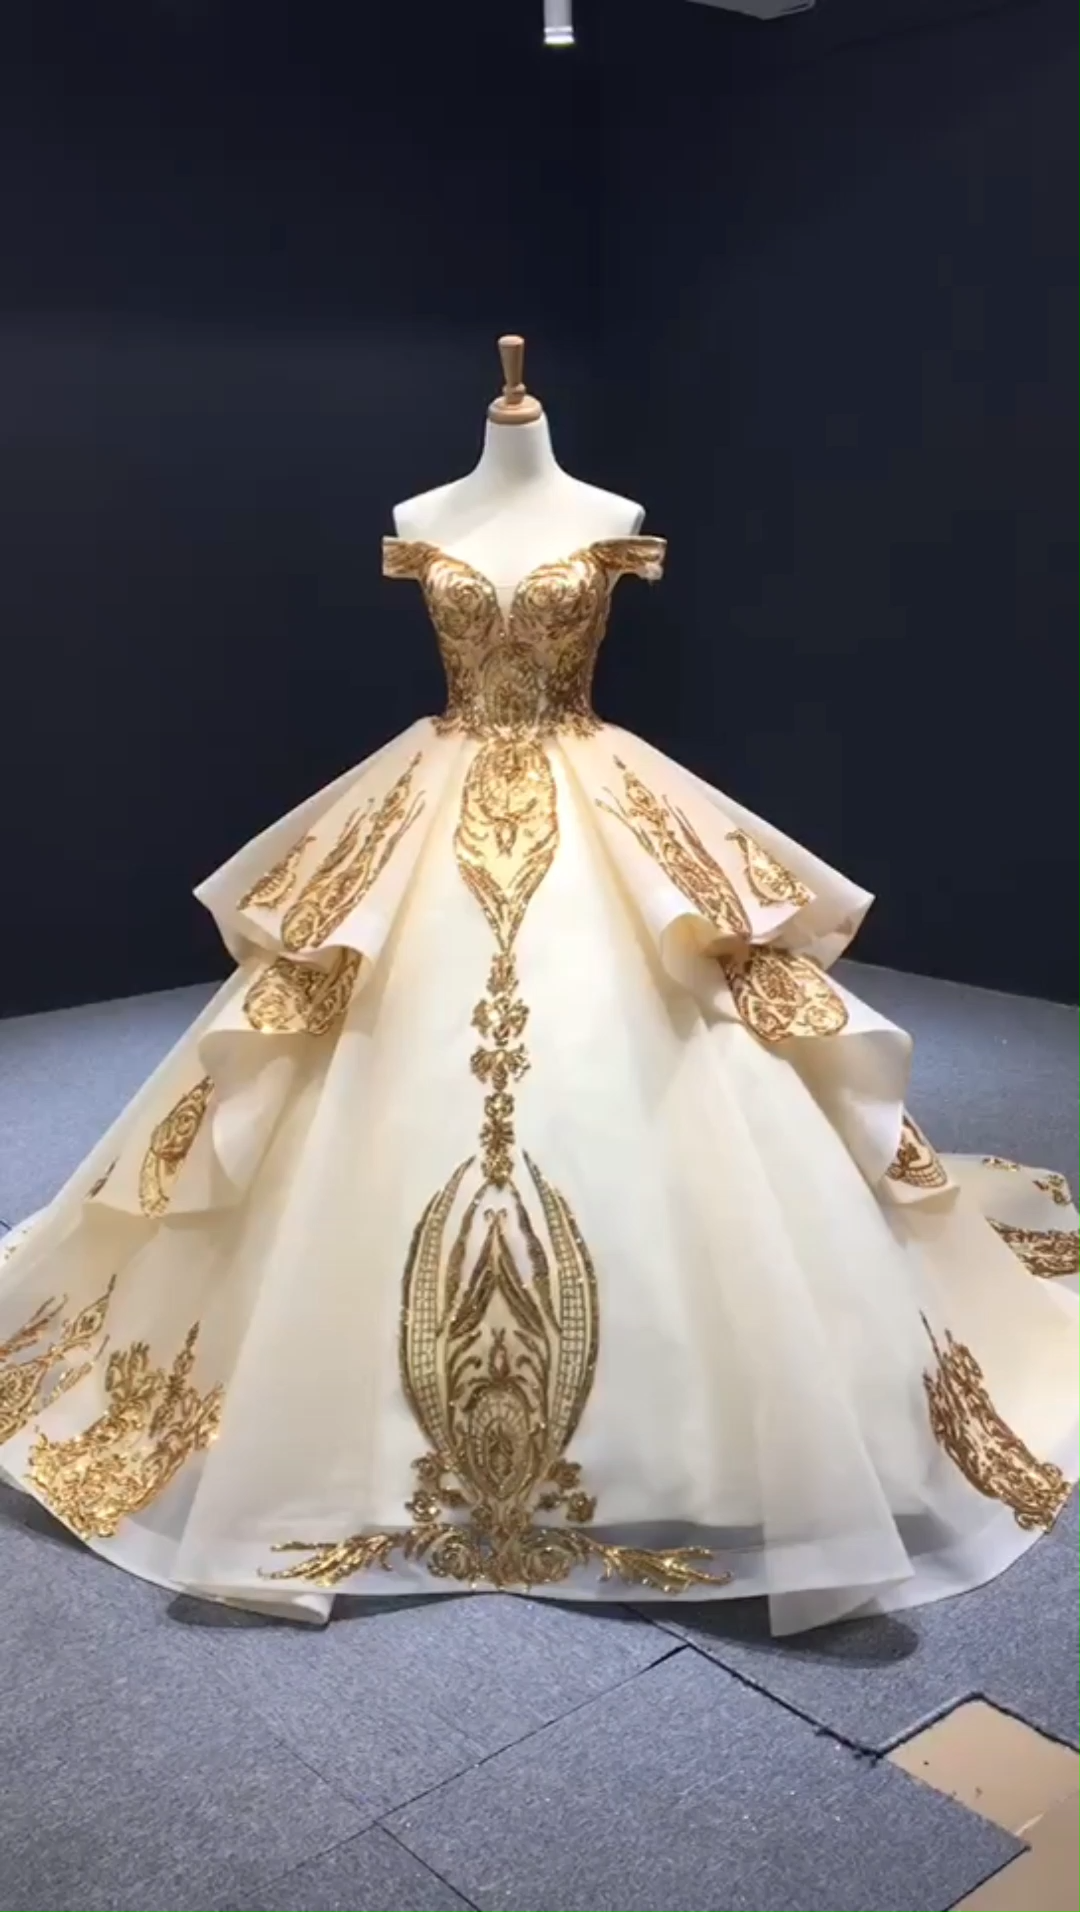 Sparkly gold couture formal dresses with train. Luxury gold sequin ball gown. #couture #couturefashion #prom #style #fashion Source by daisincy #gowns